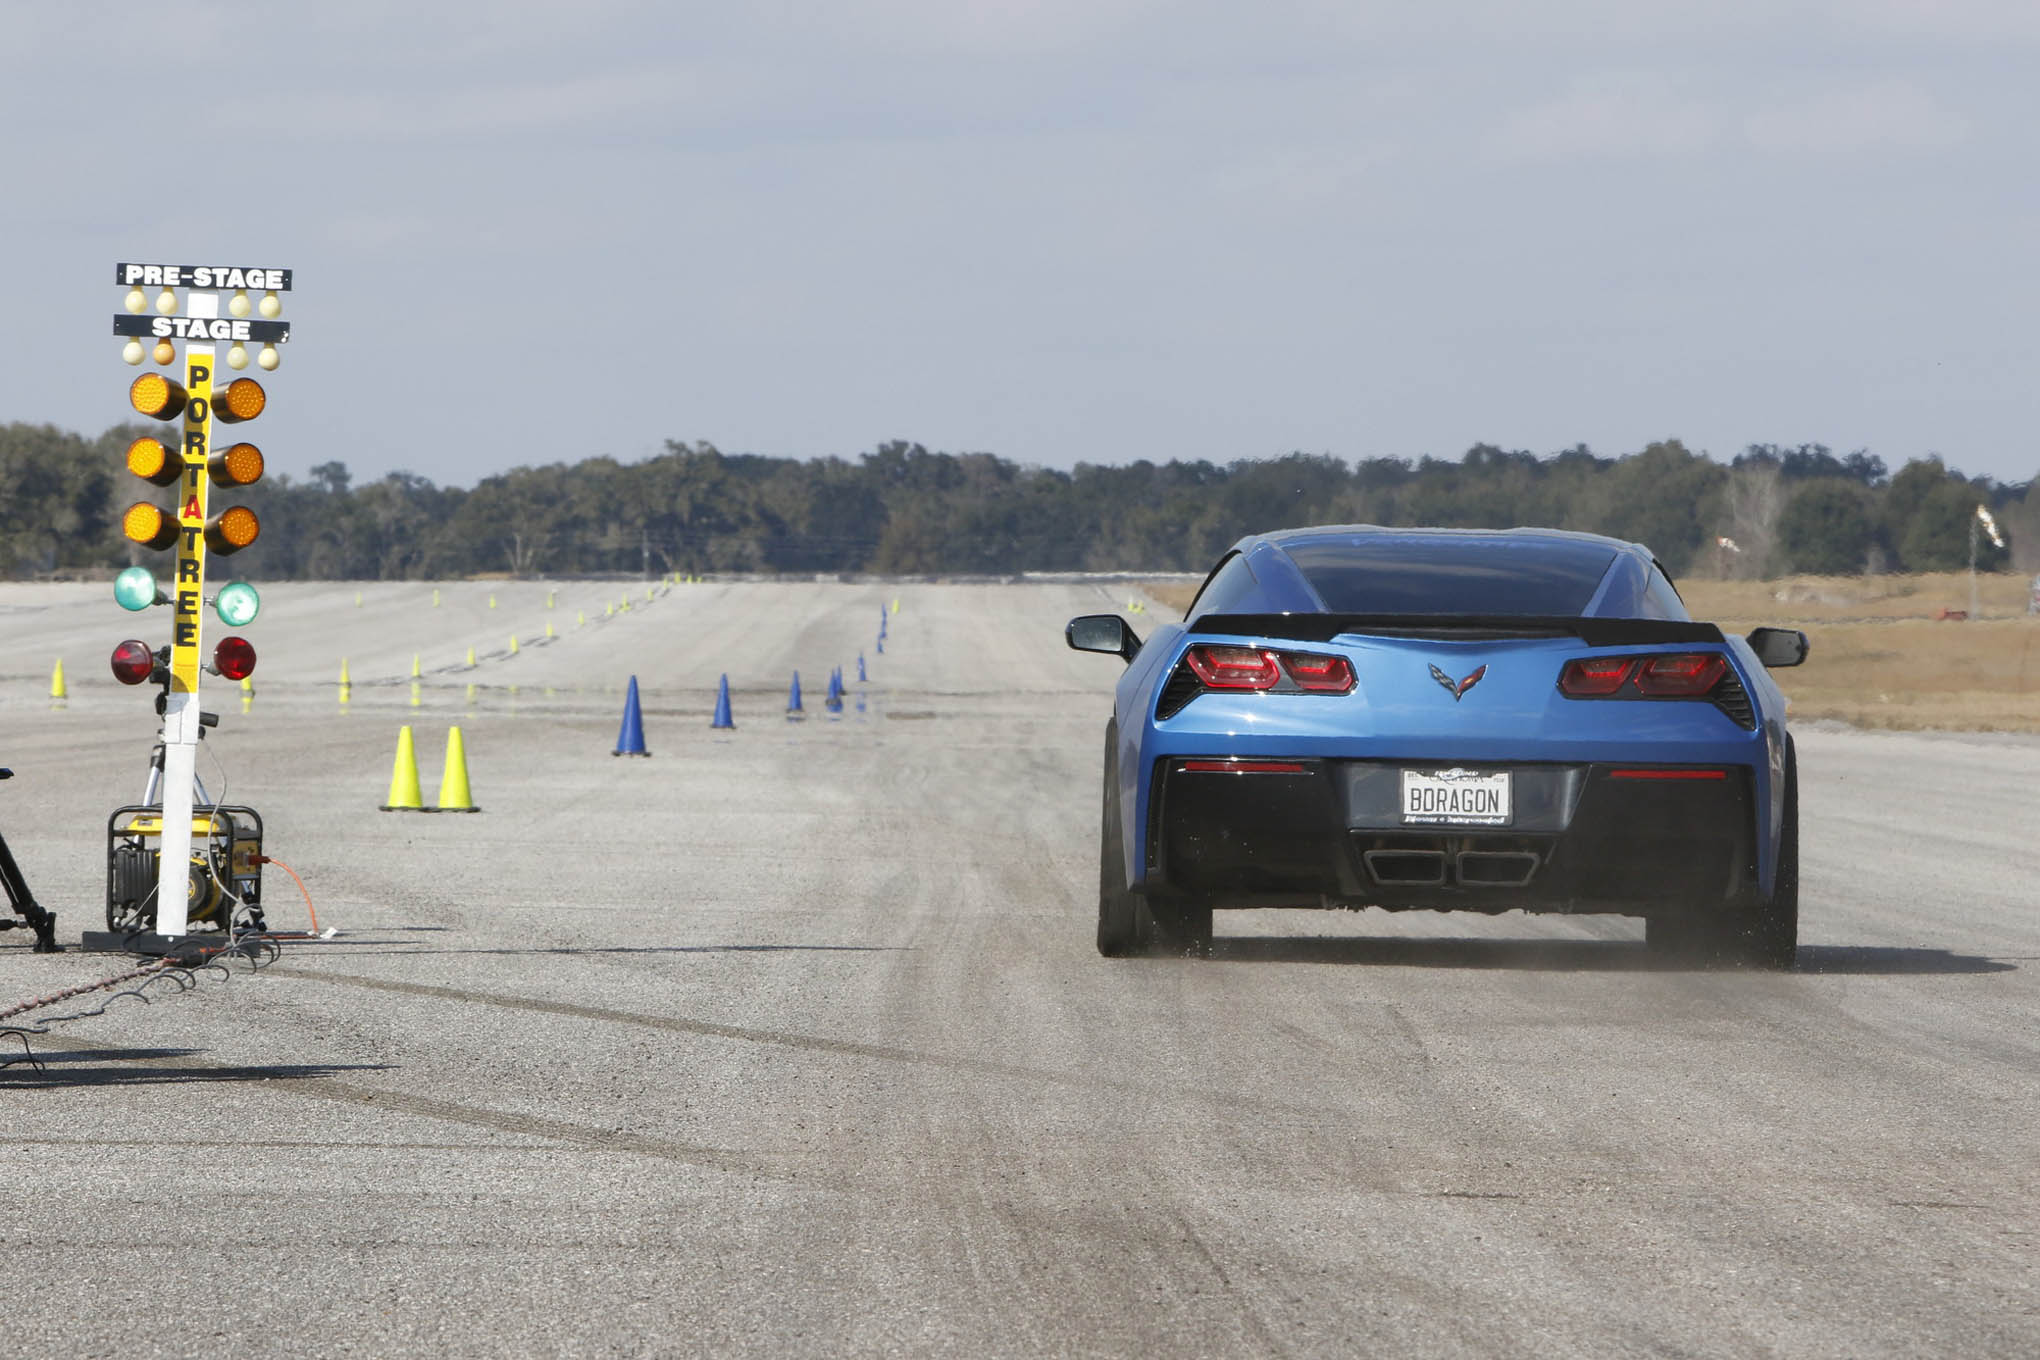 Scotty Willard's 2014 Corvette was packing a 416ci engine boosted with a F-1A Procharger developing 15 psi. Willard ran 161 mph on the pass we saw, but he was looking for more.